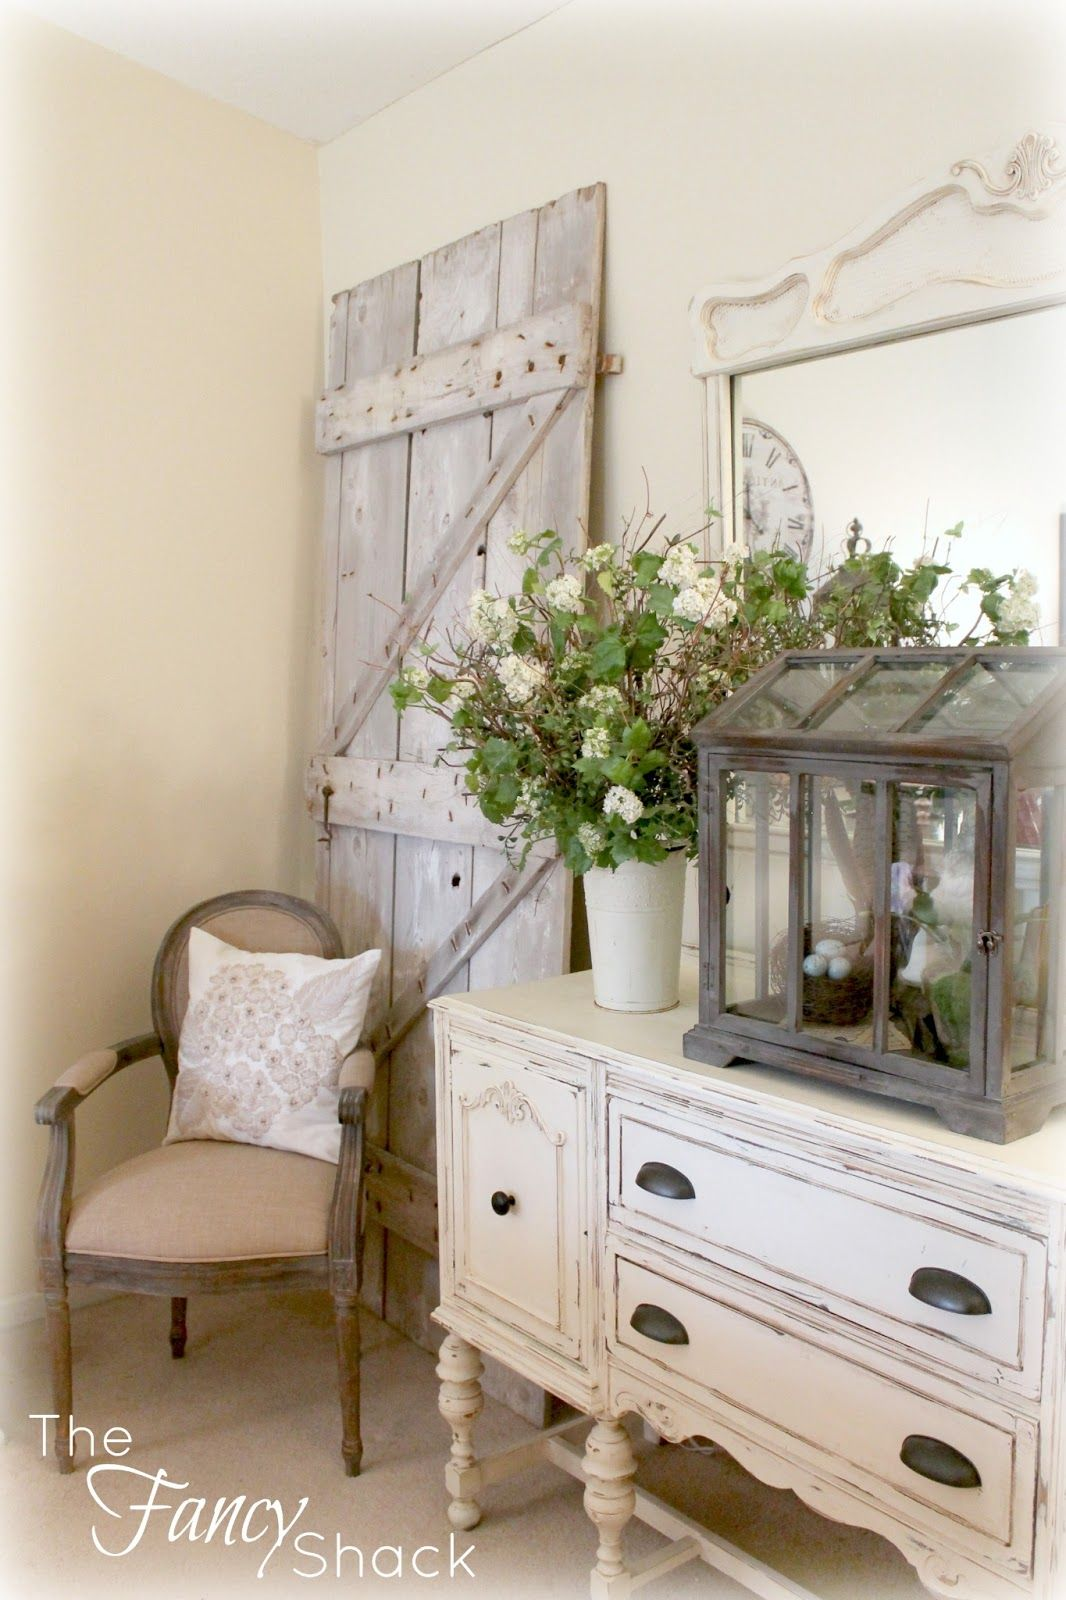 52 ways incorporate shabby chic style into every room in your home Chic country house architecture with adorable interior design